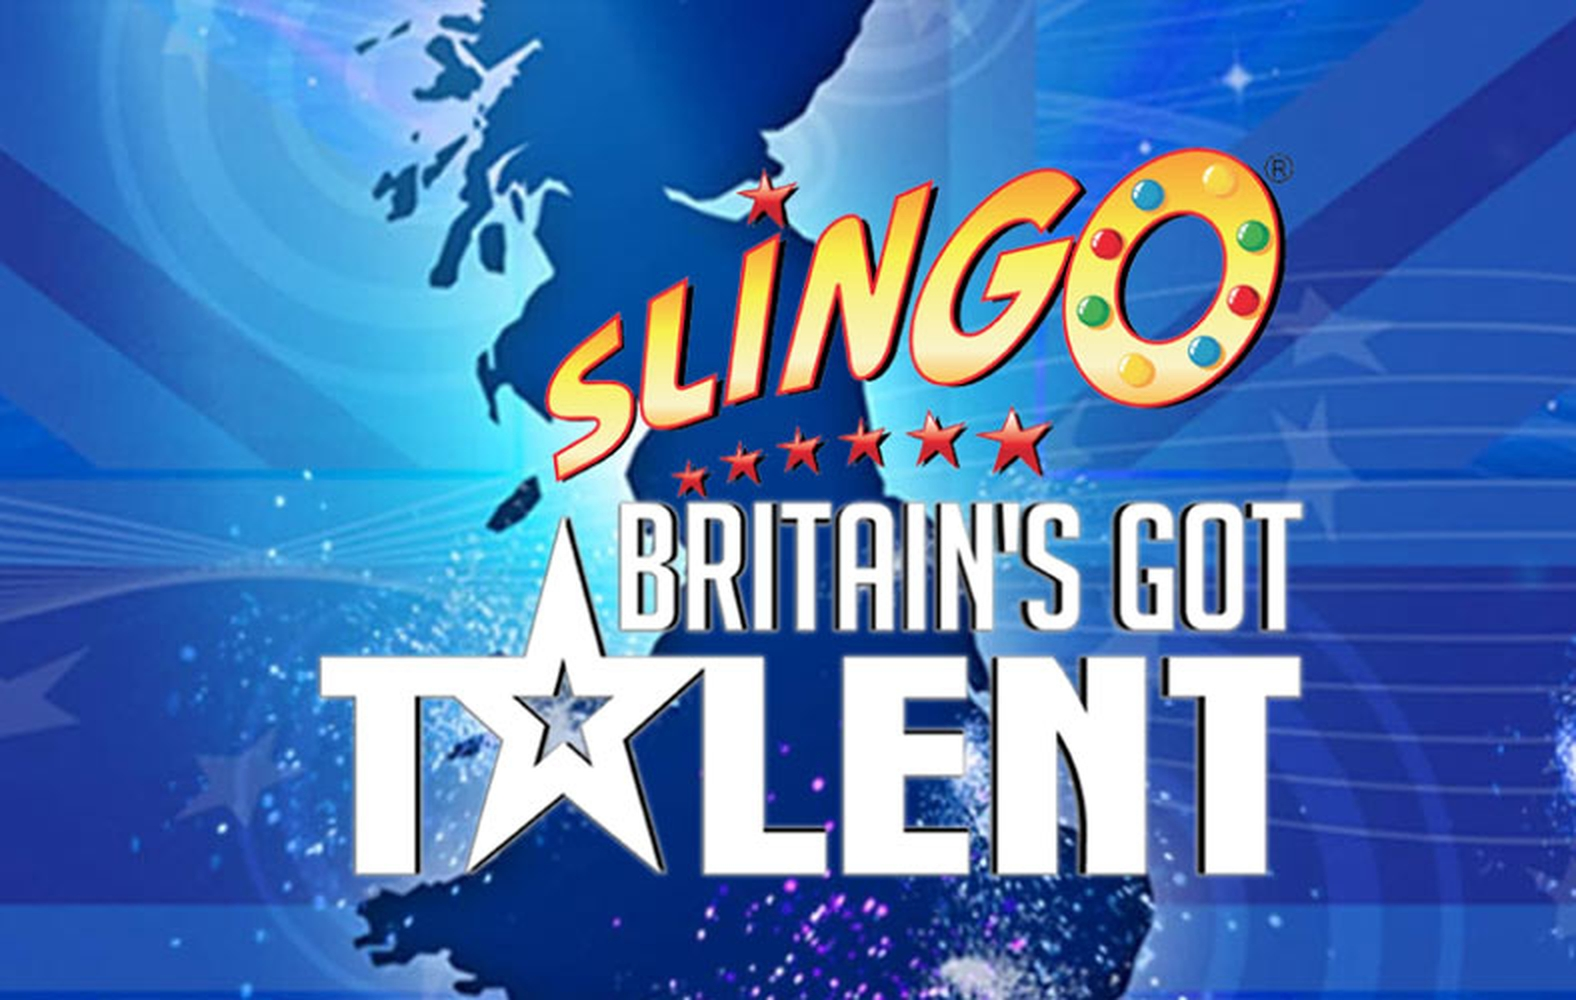 The Slingo Britain's Got Talent Online Slot Demo Game by Slingo